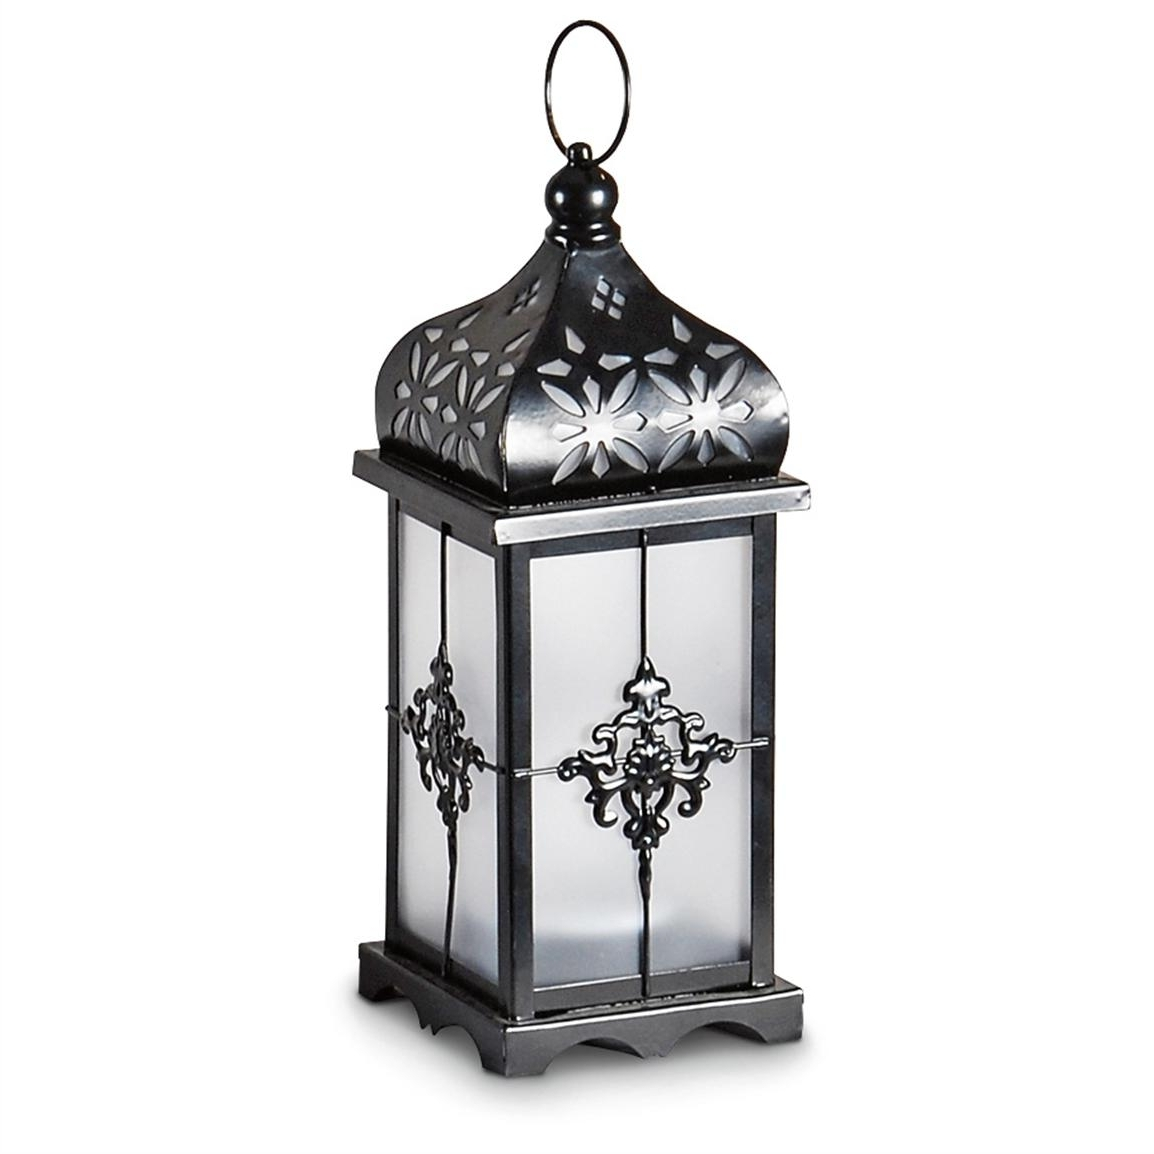 Outdoor Candle Lanterns For Patio Pertaining To Well Known 37 Patio Lanterns Canada, Castlecreek Solar Candle Lantern (View 13 of 20)